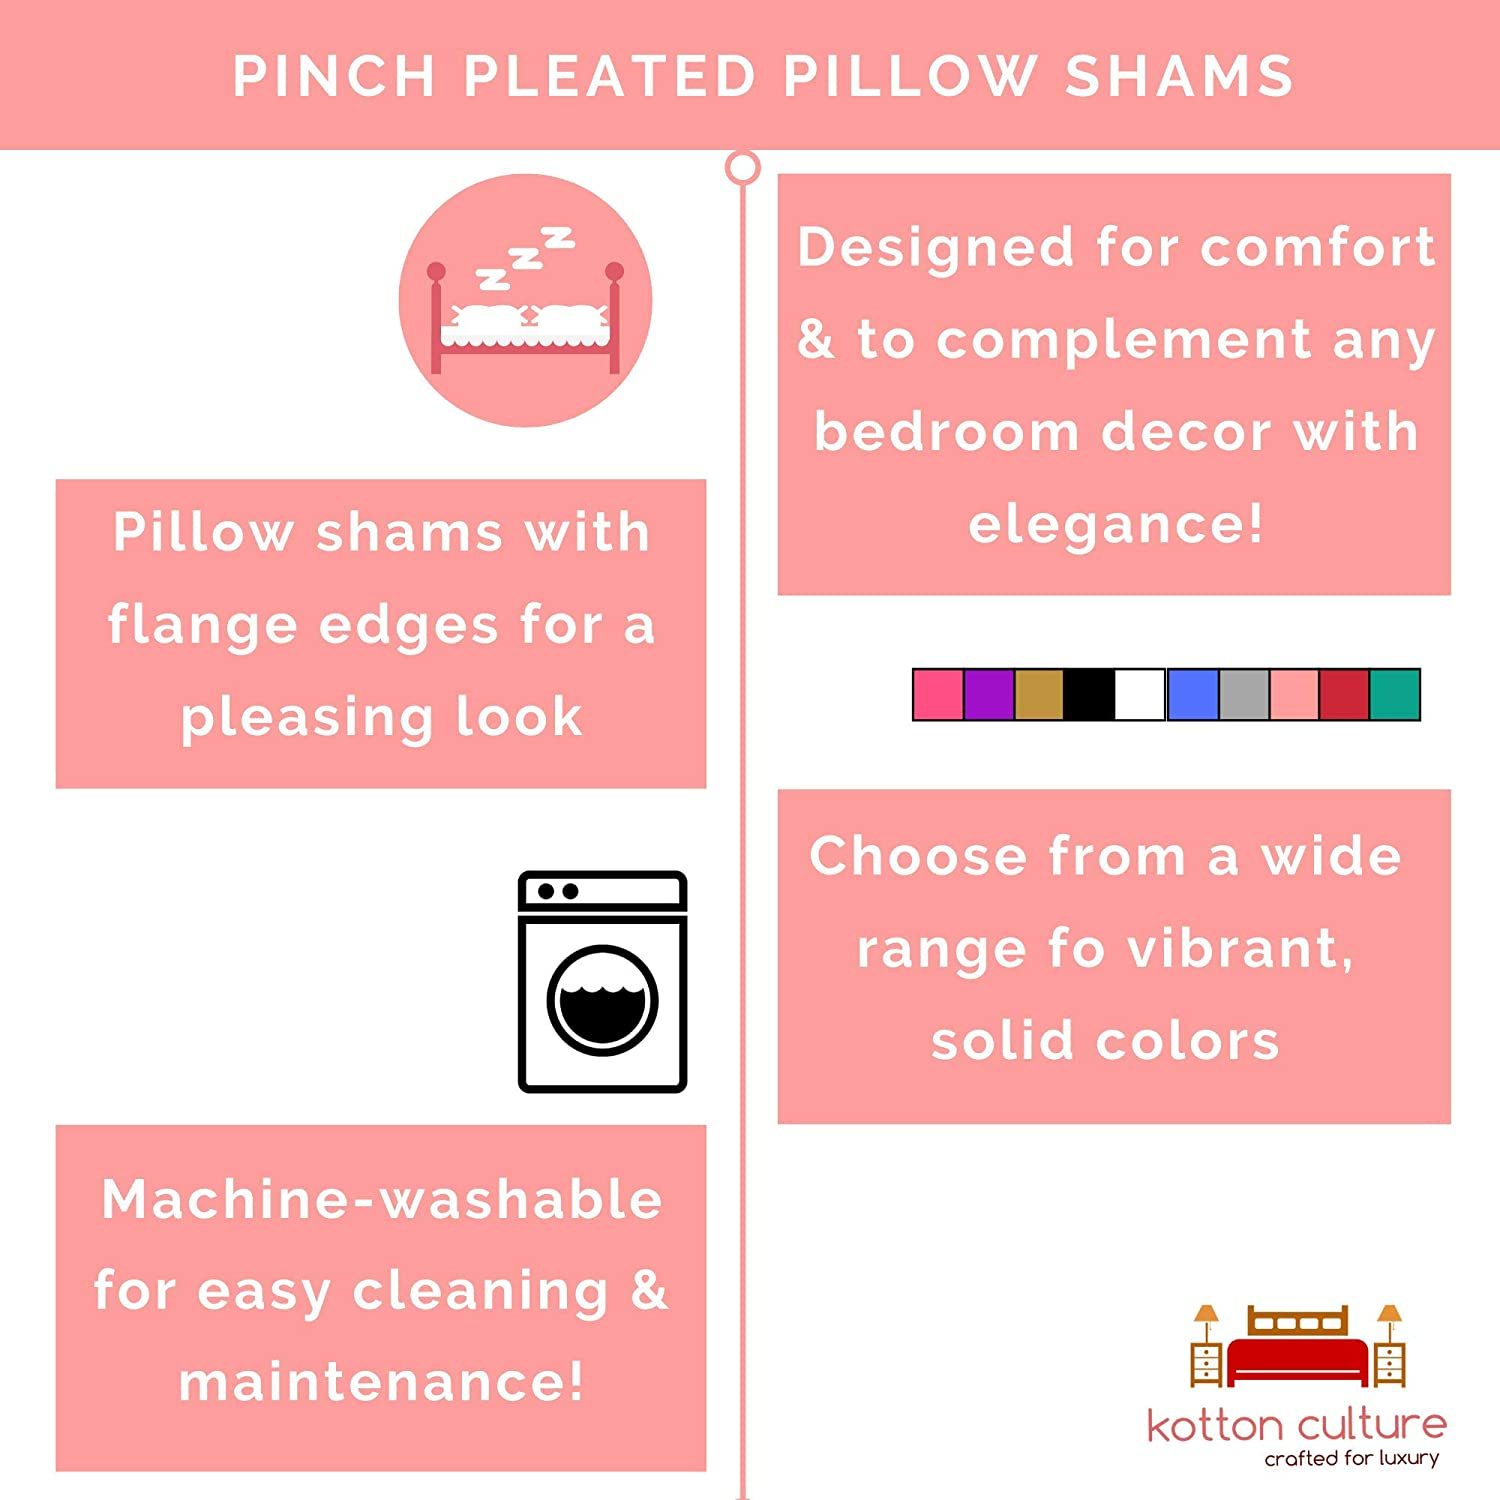 Standard Size 20X26 Inches , Taupe Kotton Culture Set of 2 Pillow Shams Pinch Pleated 100/% Egyptian Cotton 600 Thread Count Super Soft Decorative Hotel Class Bedding